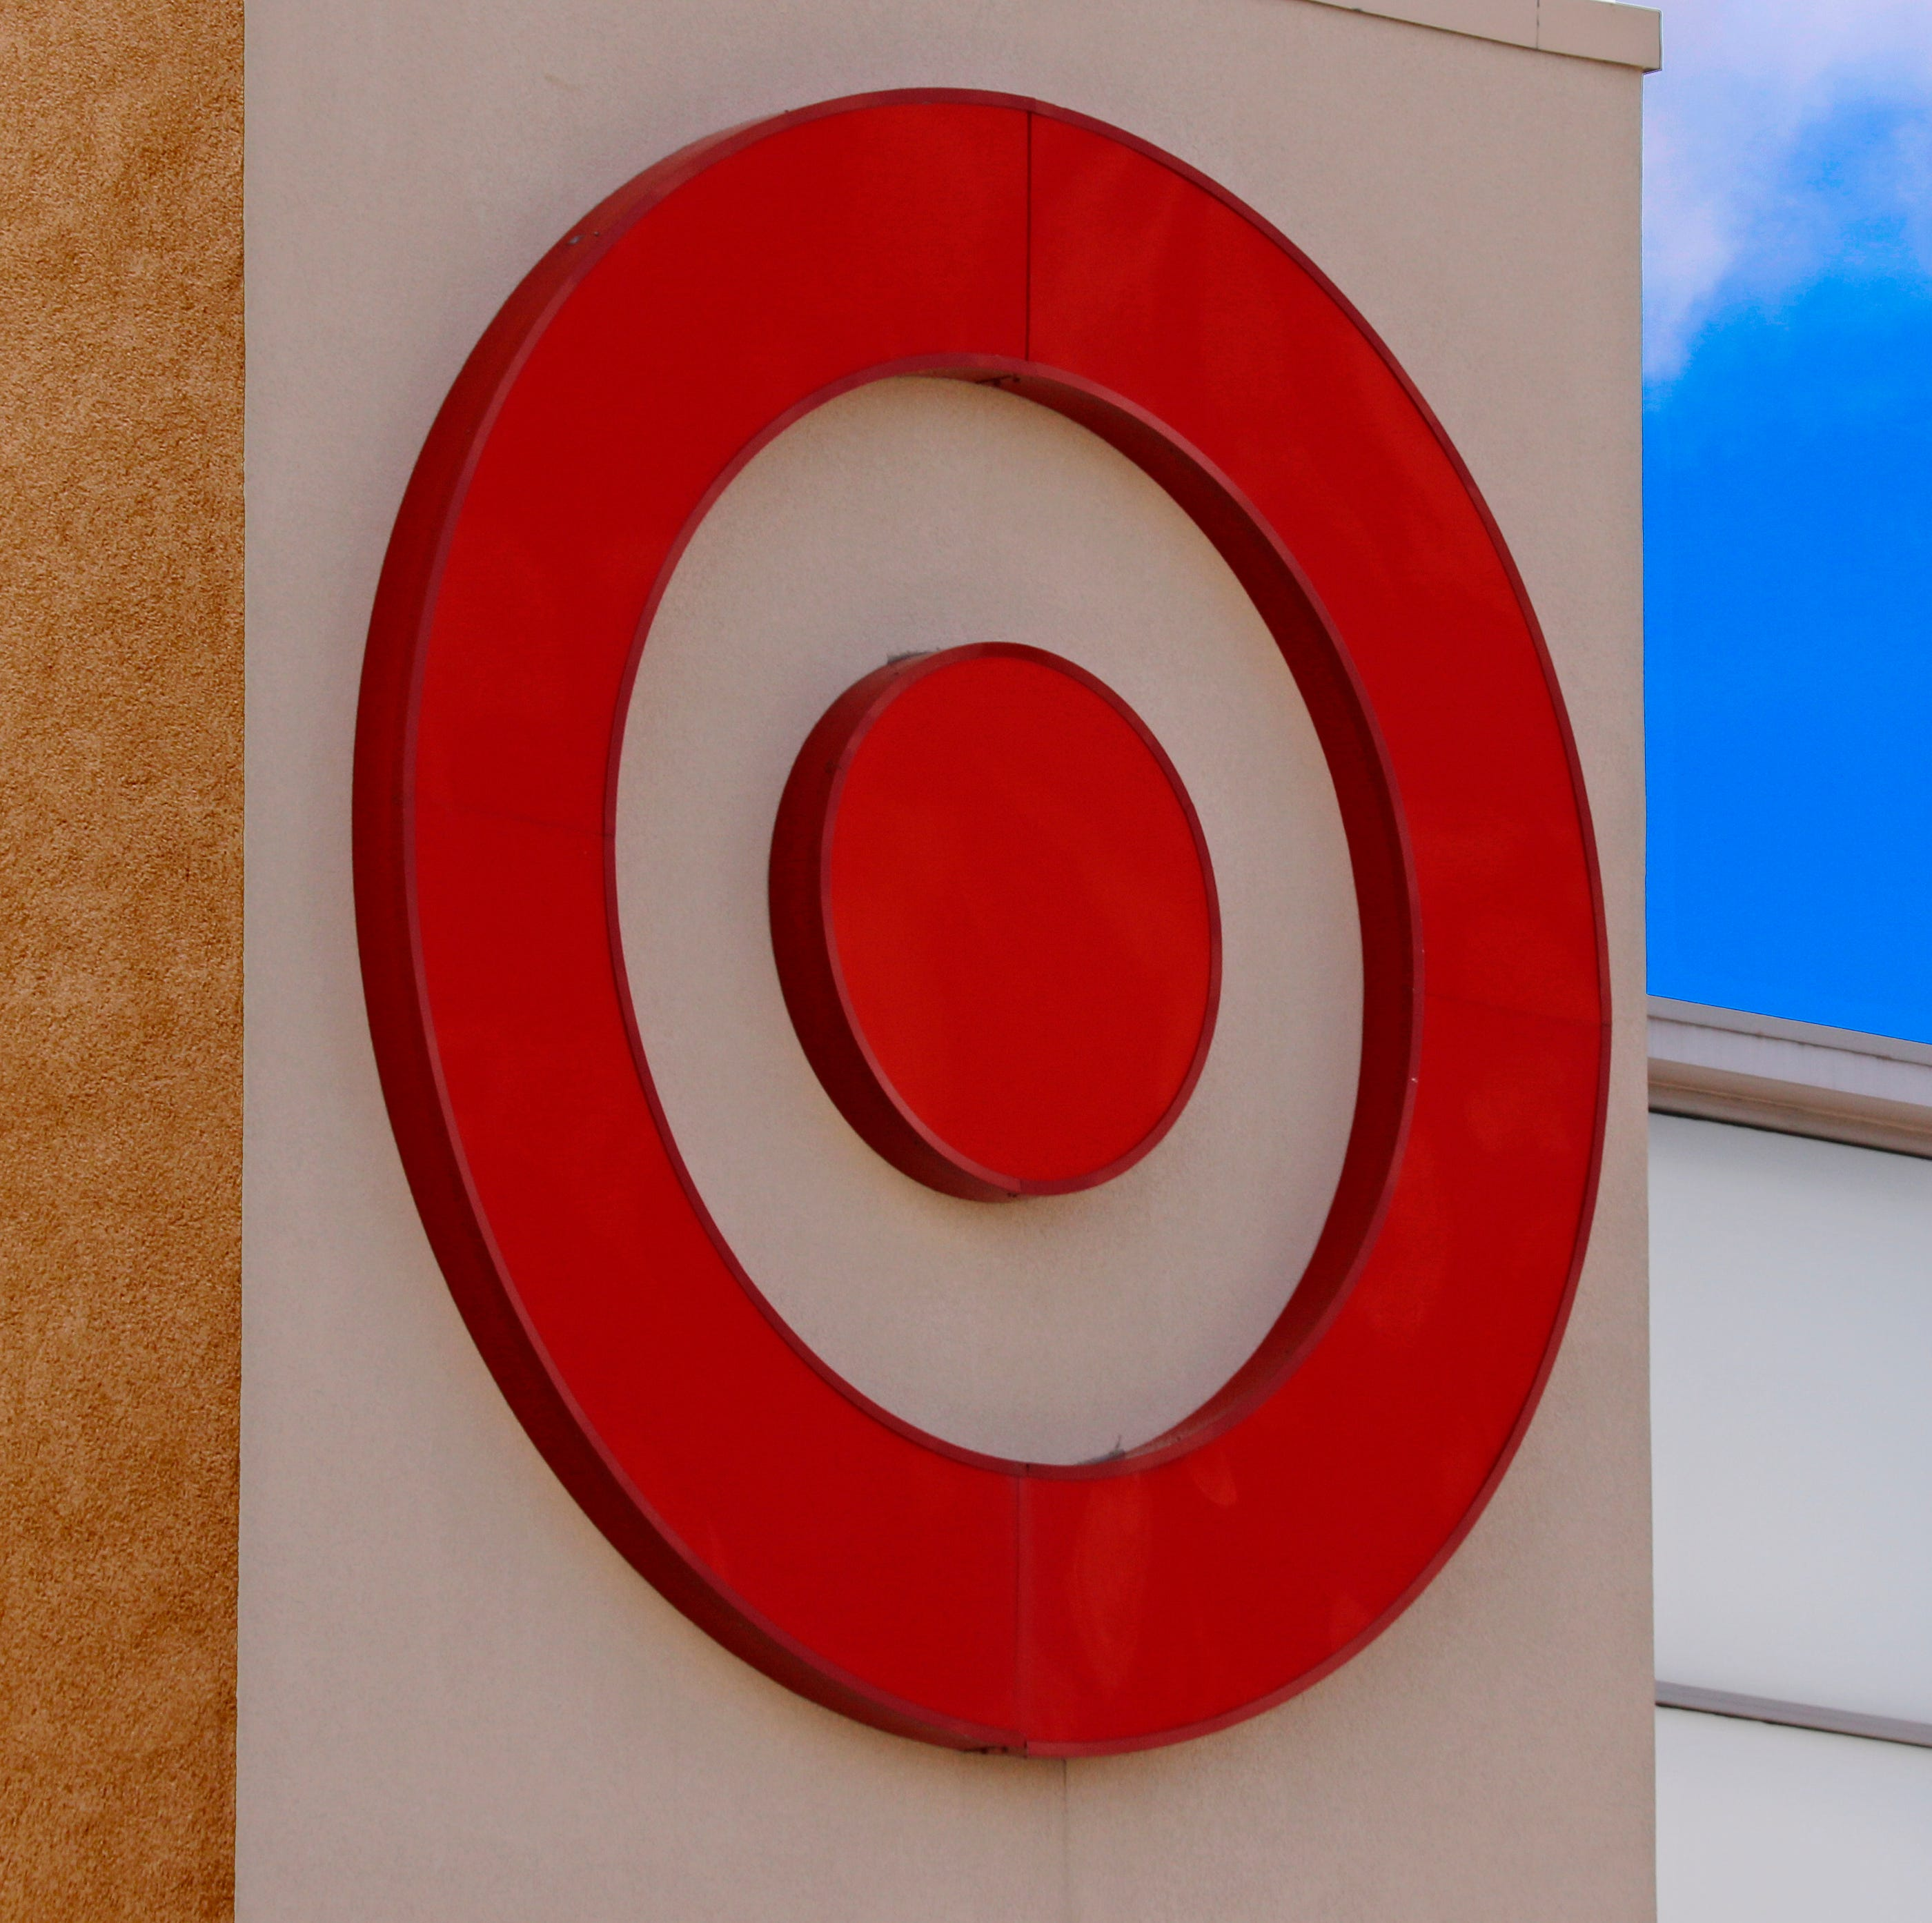 Target is dominating in the digital space